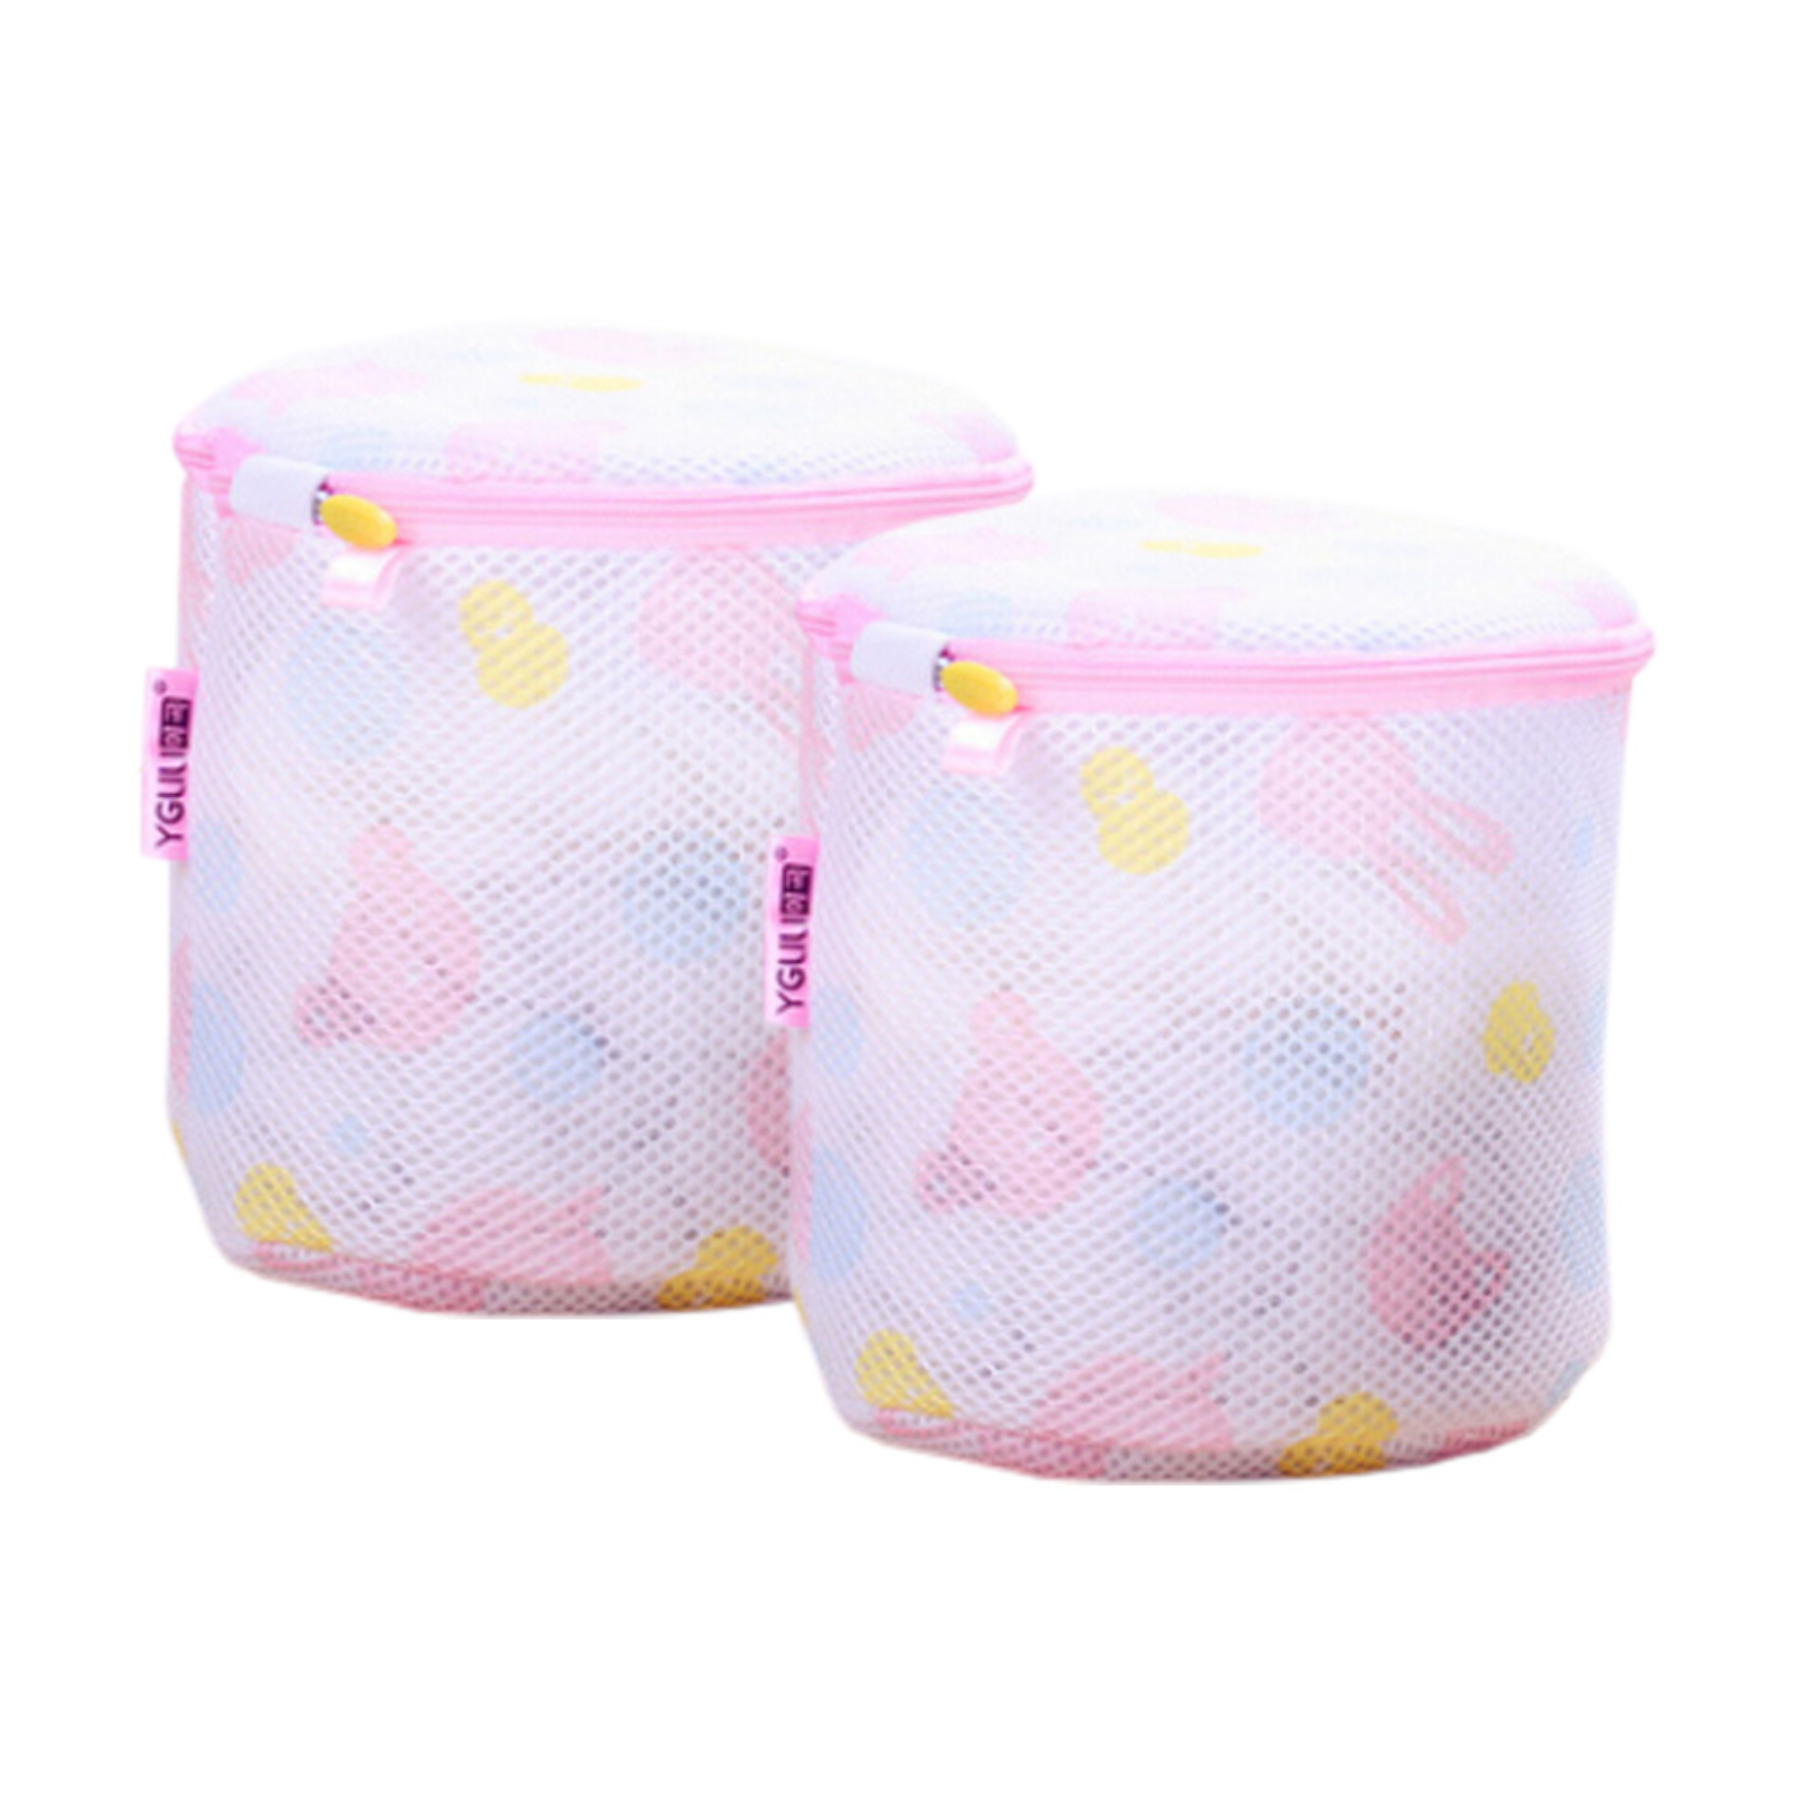 Set Of 2 Clothes Protector Laundry Bag Washing Bag Safely Separate Cute Cartoon Ke-Hom3744371-Amy01057 KE-HOM3744371-AMY01057